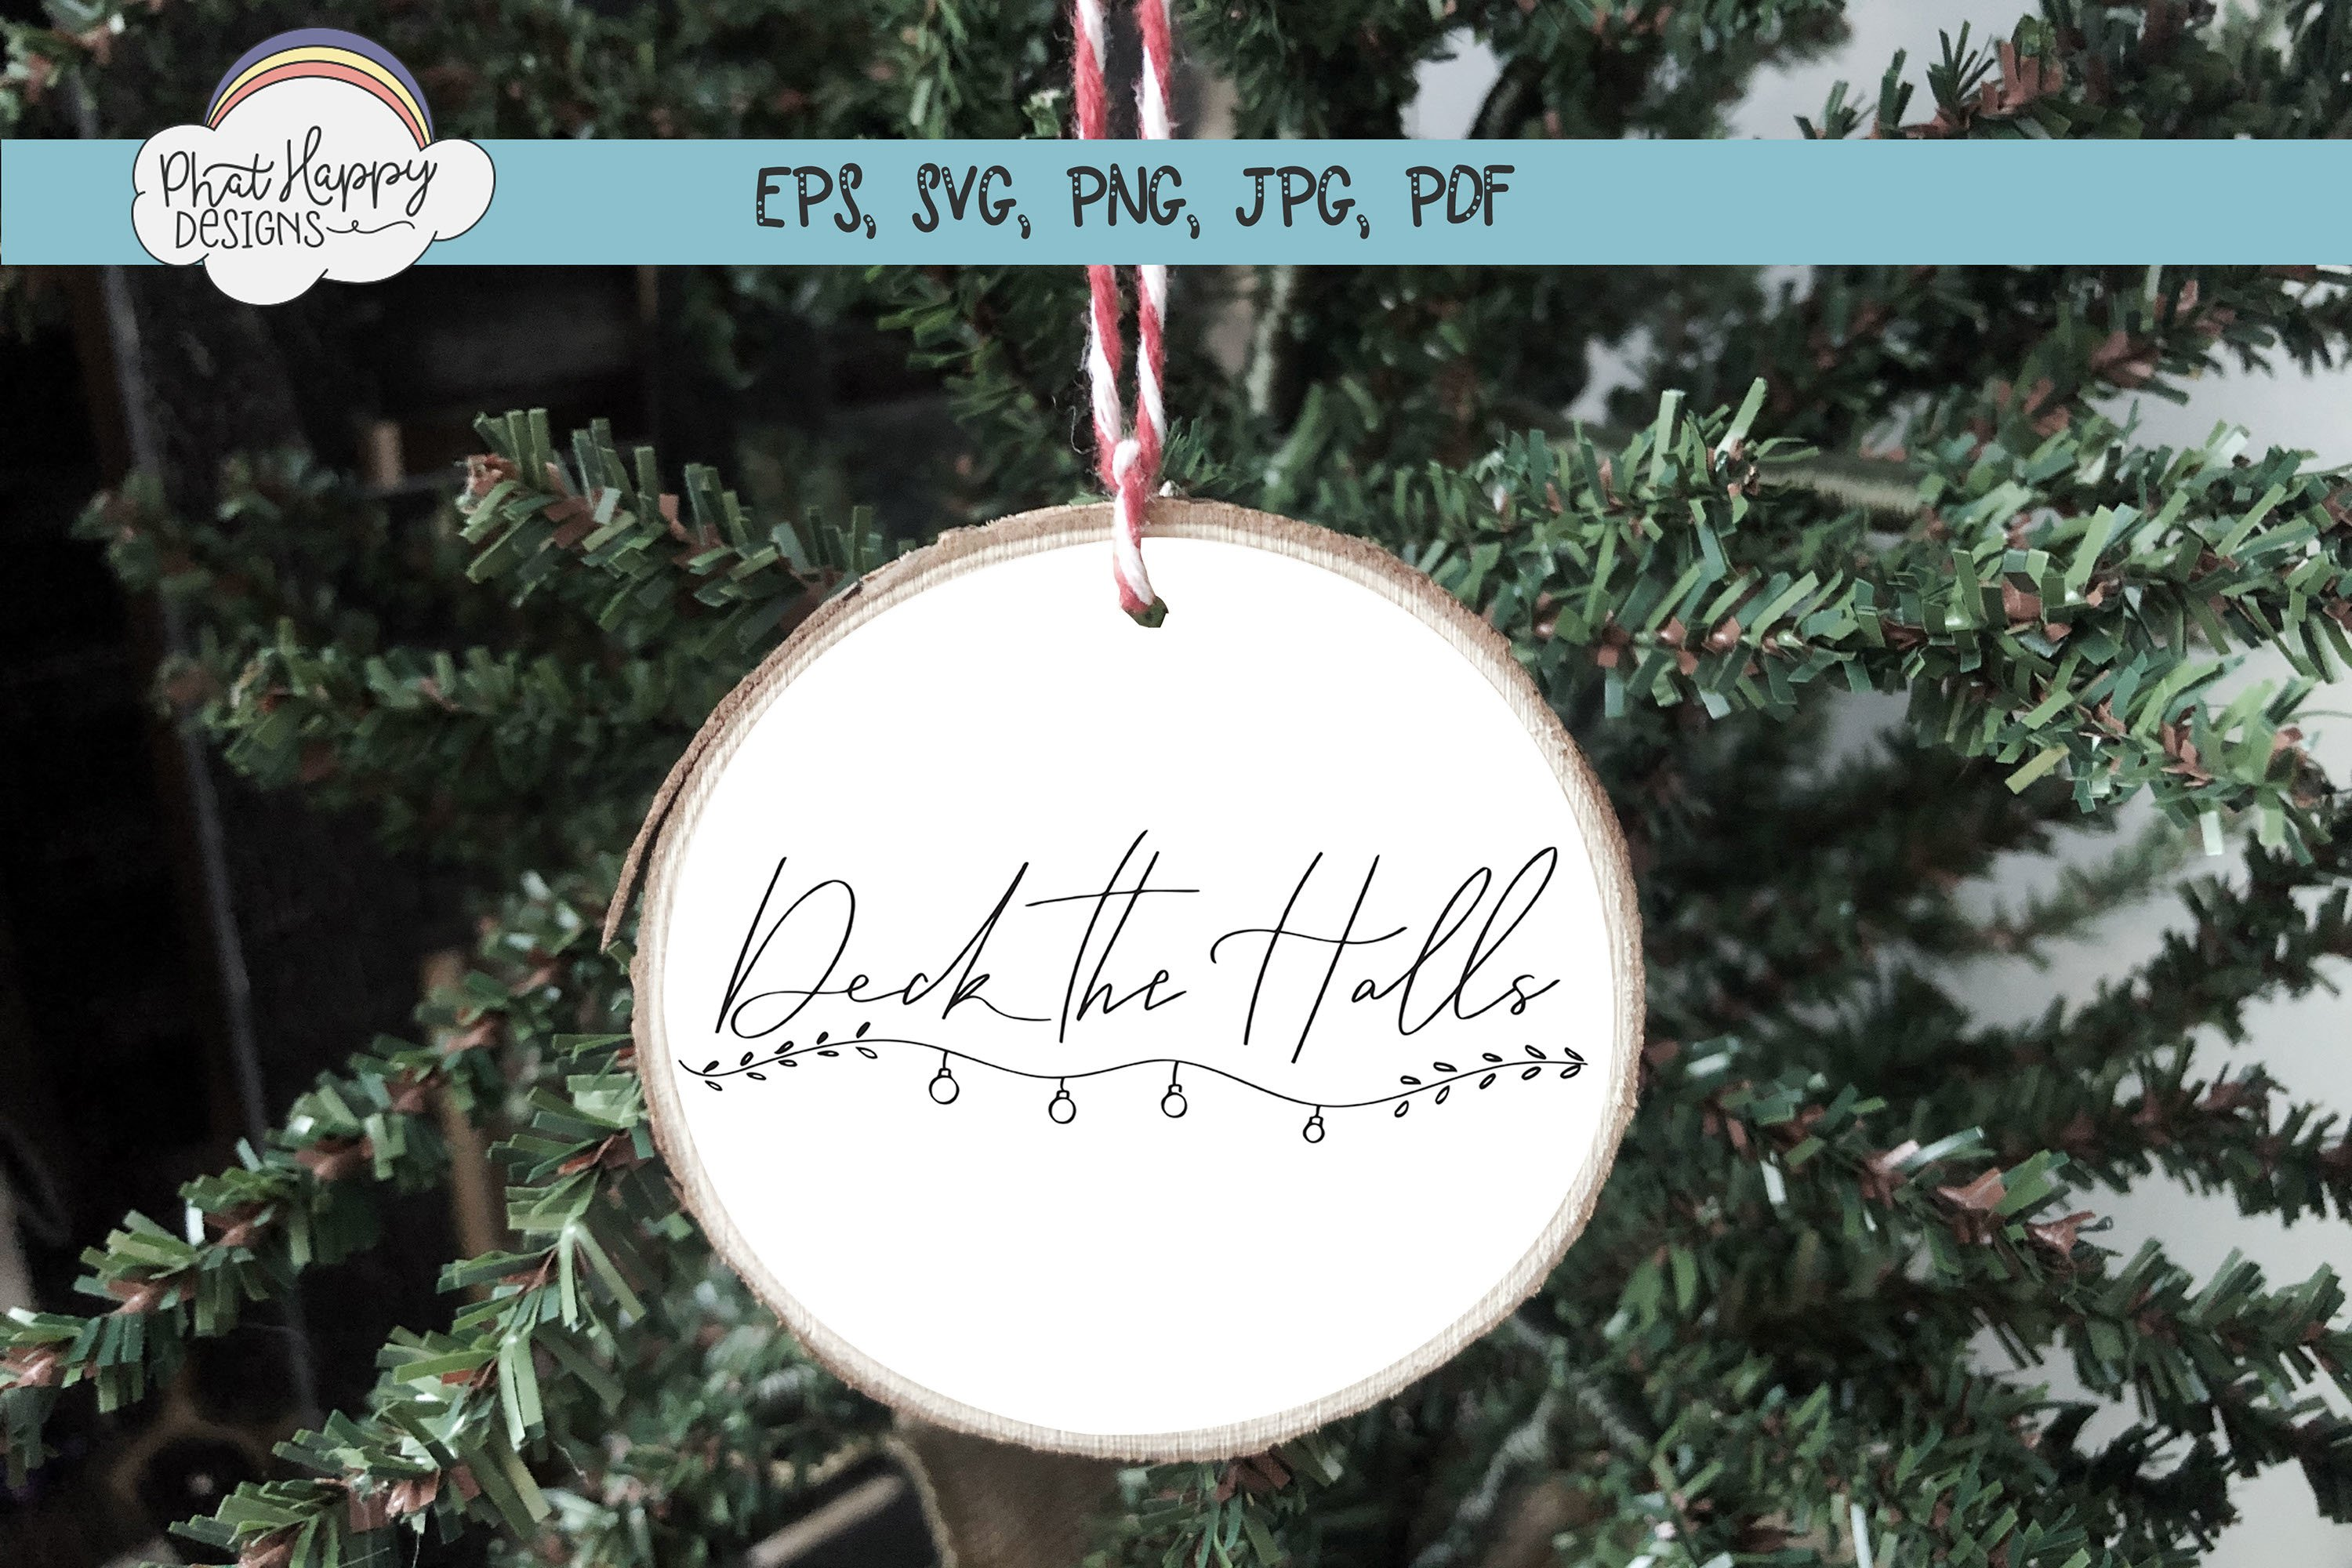 Deck the Halls - Hand Lettered Christmas SVG example image 4